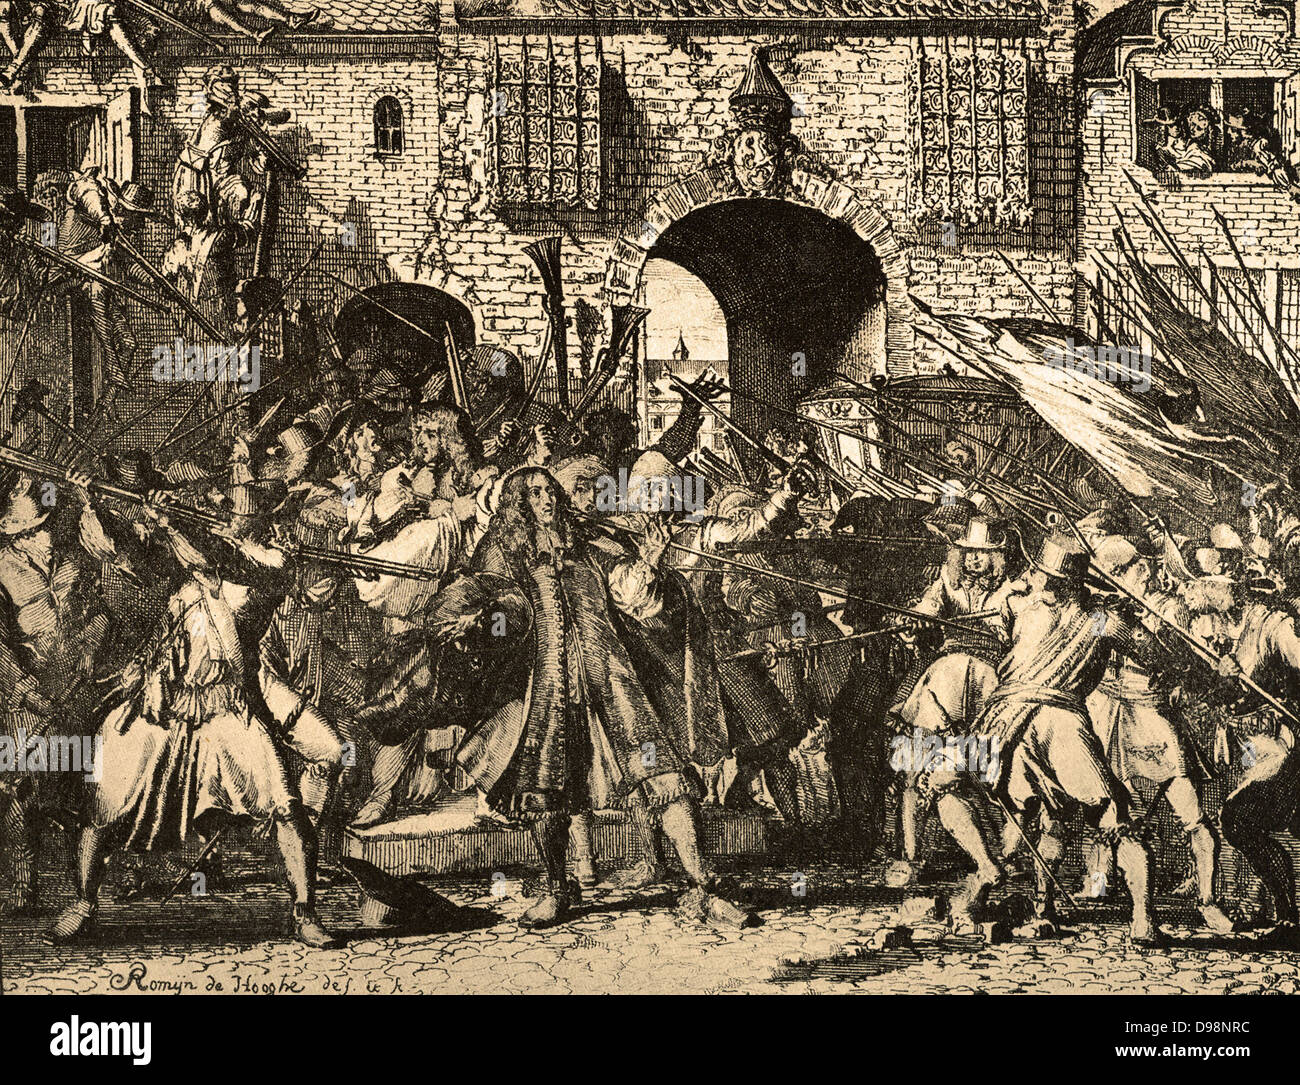 the murder of the brothers Johan and Cornelis de Witt, at The Hague on 20 August 1672. - Stock Image